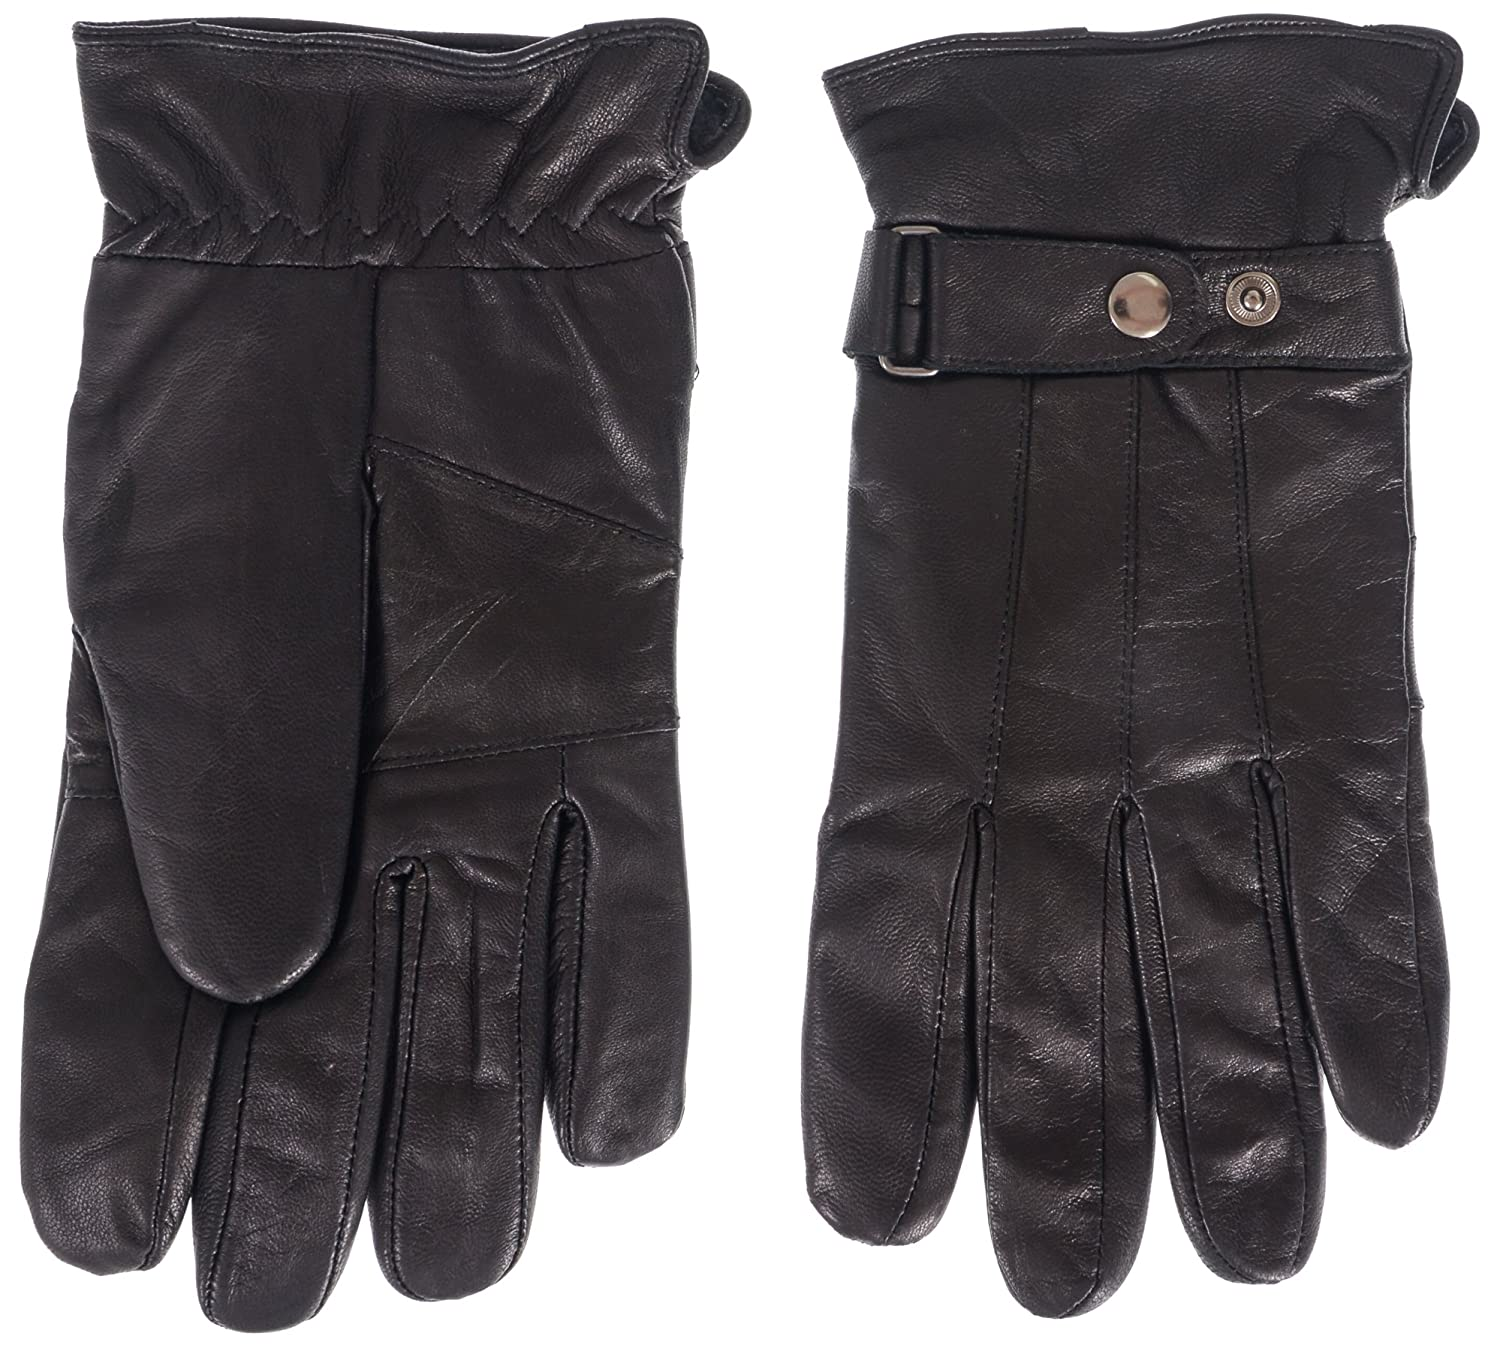 Klondike Men's Pieced Leather Glove with Adjustable Strap